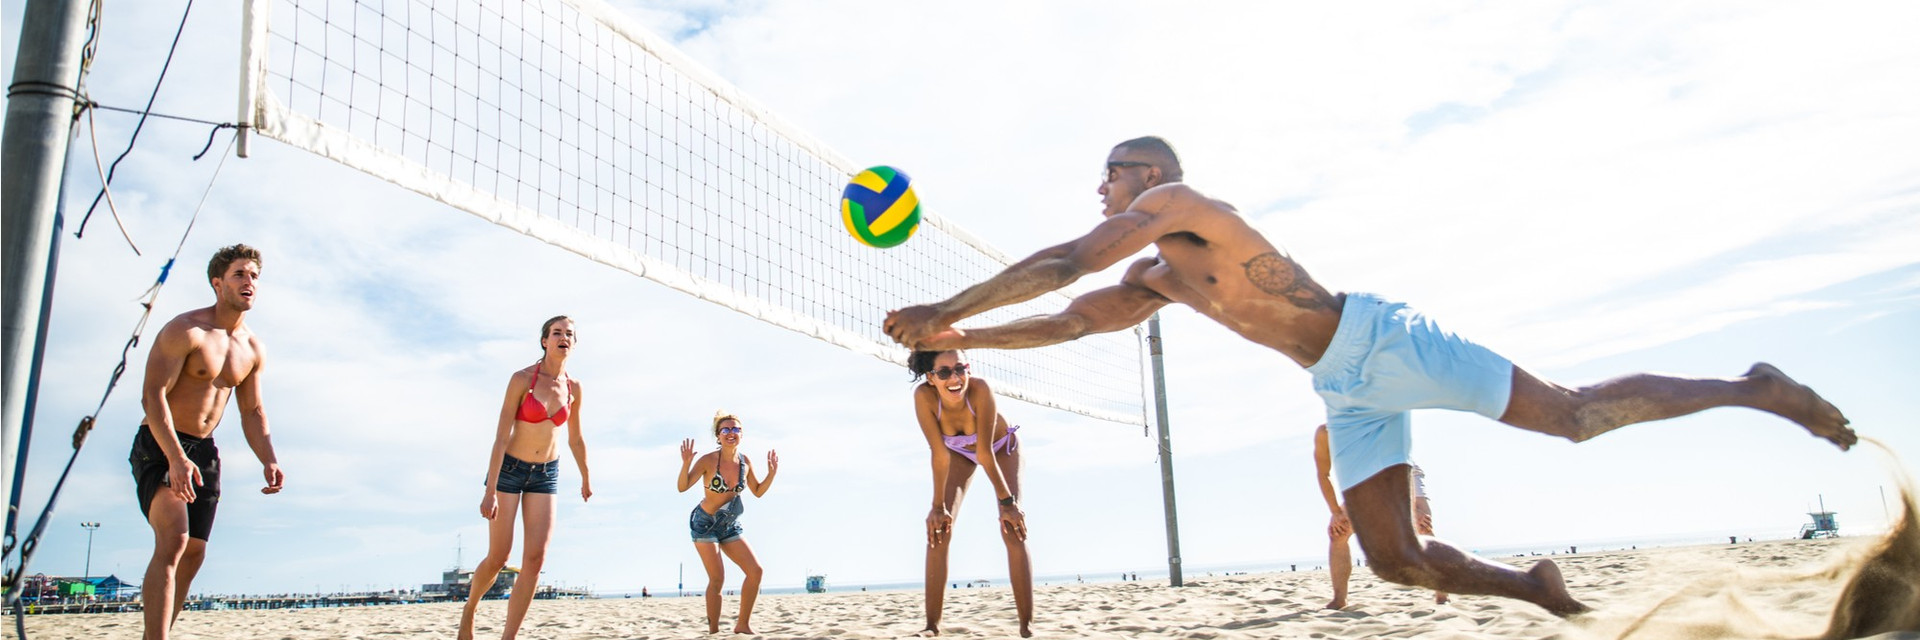 Beach Volleyball Injuries: The Unexpected Shin Splints | Rothman ...